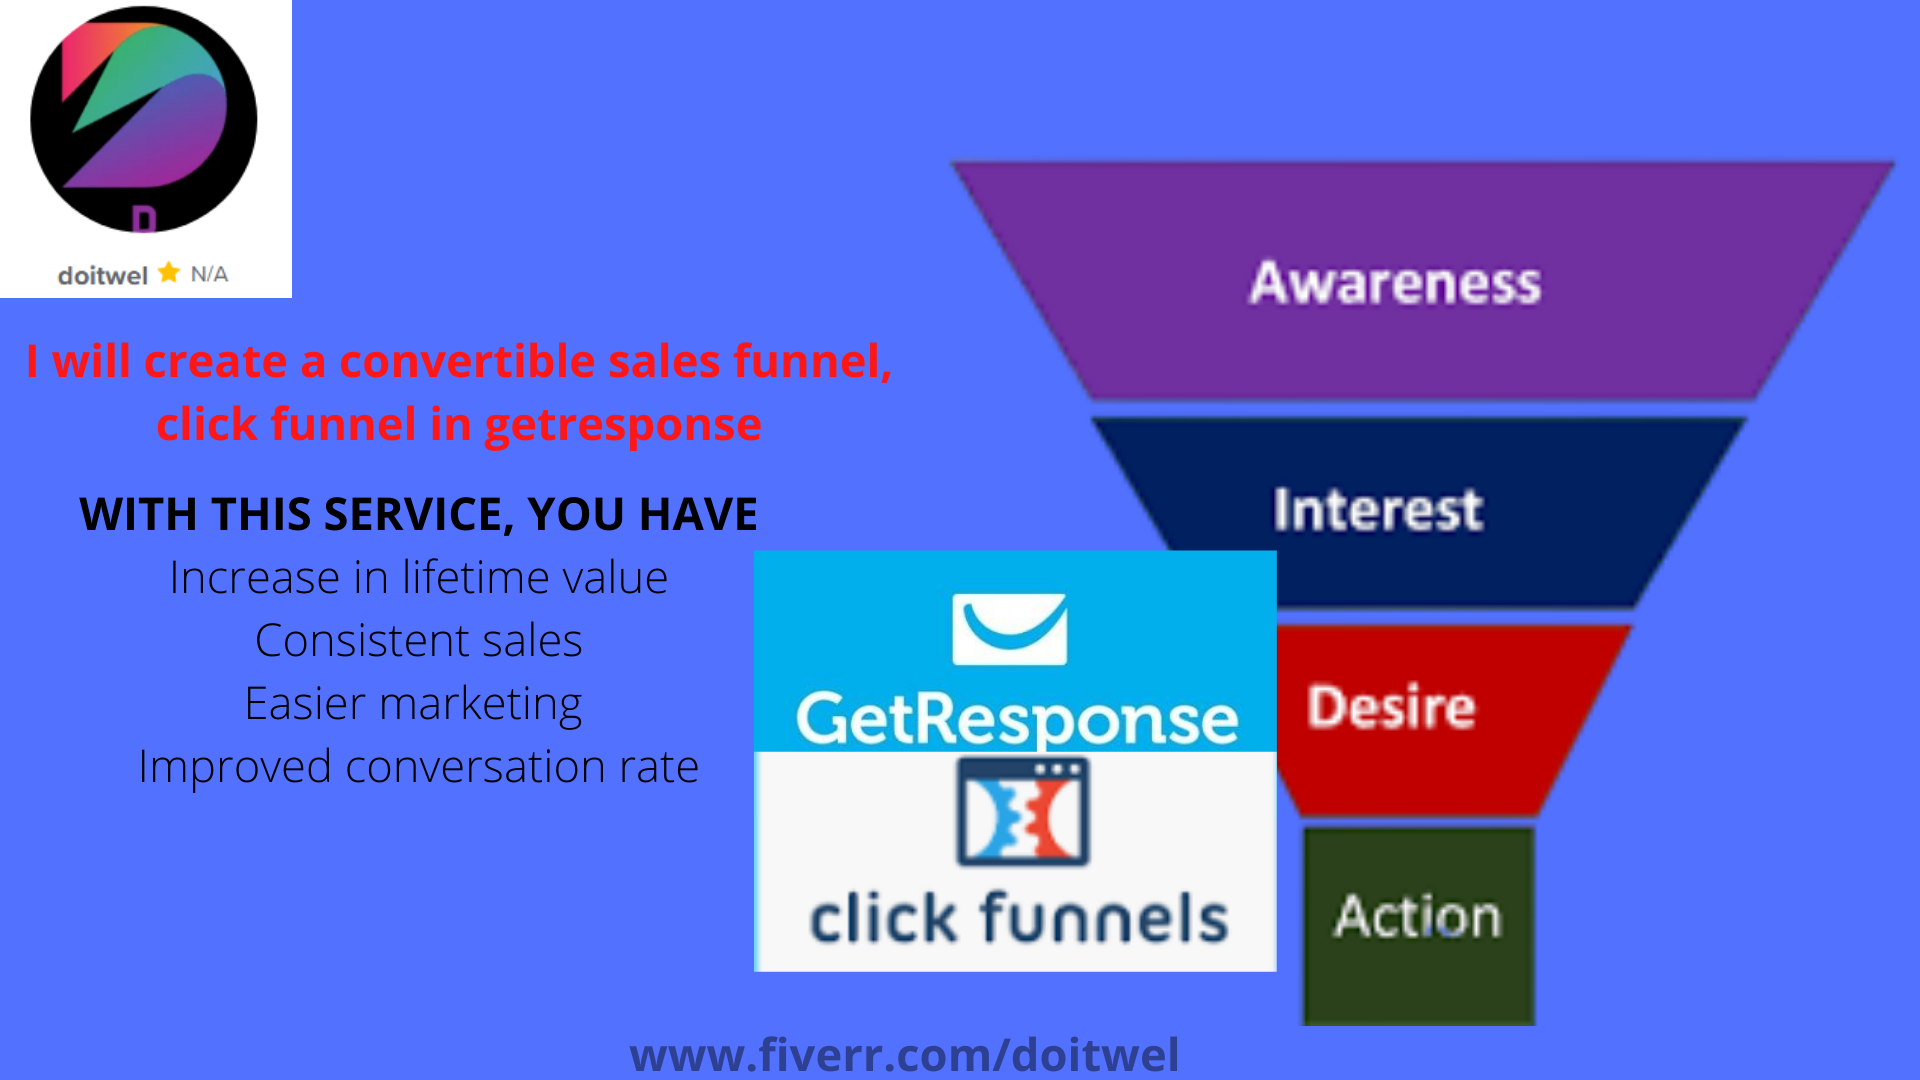 I will create a convertible sales funnel using click funnel and getresponse, FiverrBox